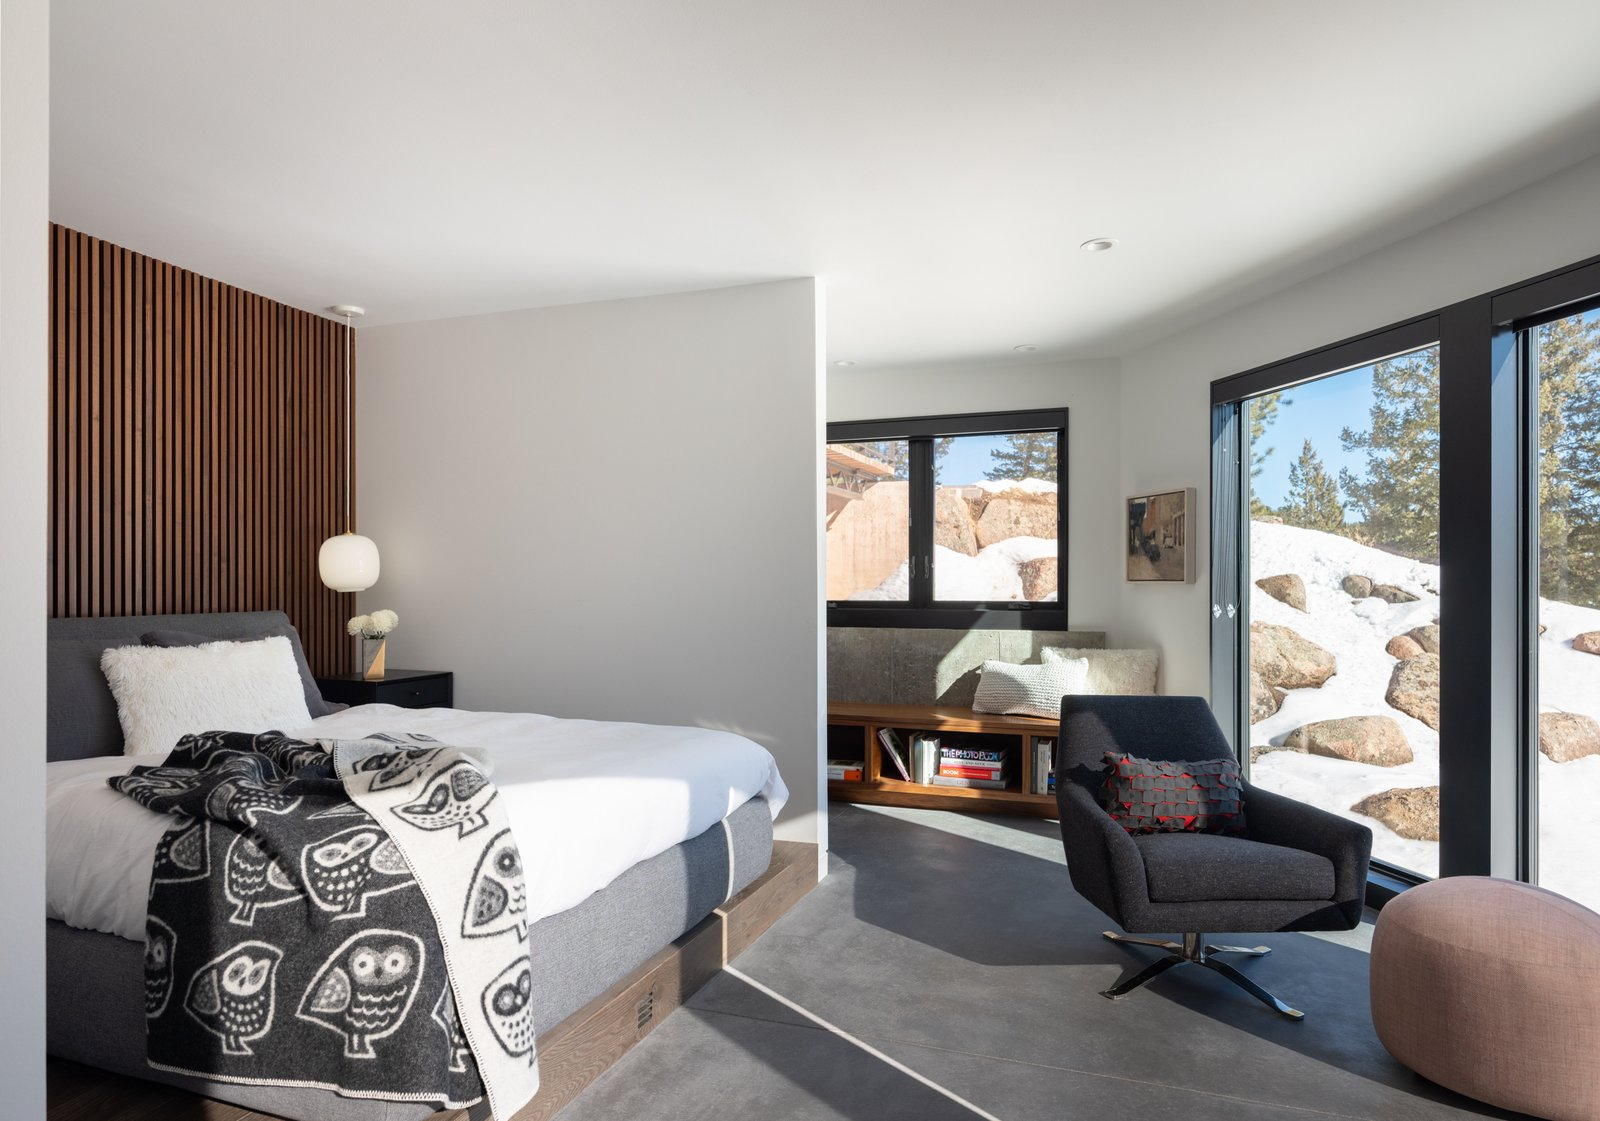 Bedroom, Concrete Floor, Pendant Lighting, Bed, Storage, Chair, Recessed Lighting, and Bench A cozy and comfortable guest bedroom is key to making sure guests feel welcome in your home.  Photos from Modern Cabin